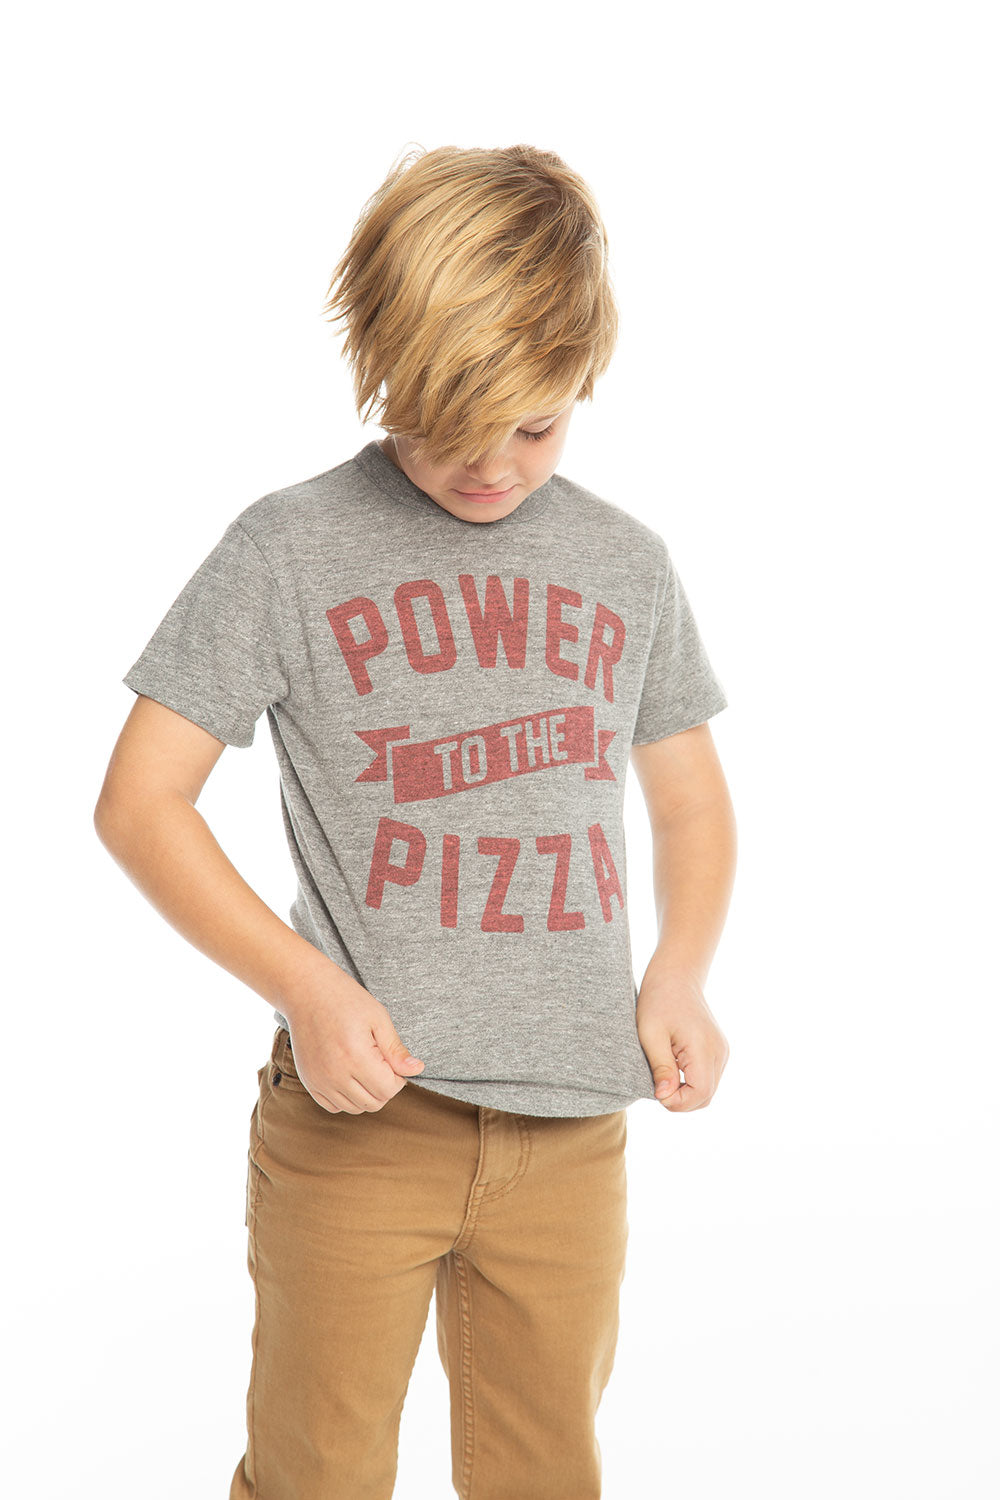 Pizza Power BOYS - chaserbrand